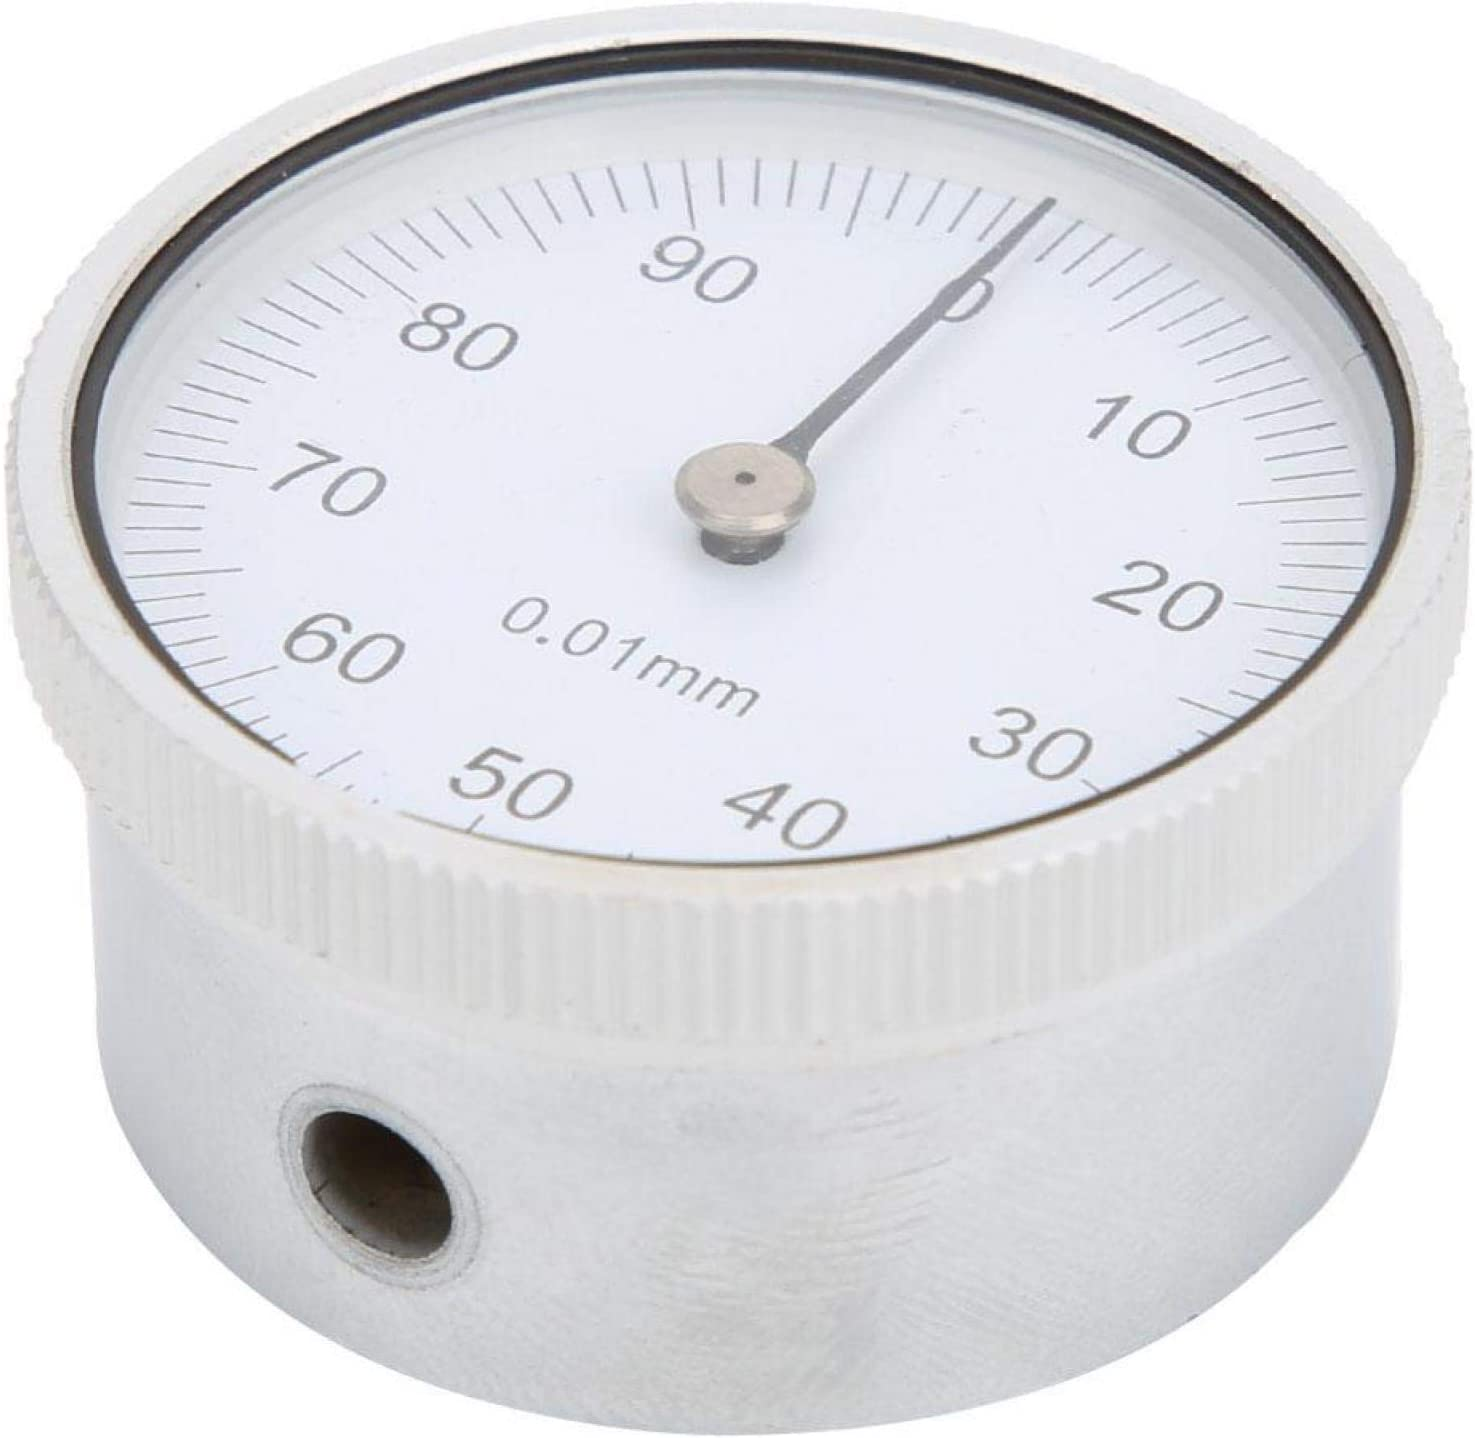 Zero Pre-Setter Setter Gauge Z Axis for Dial 0.01mm Mill Reading High order excellence